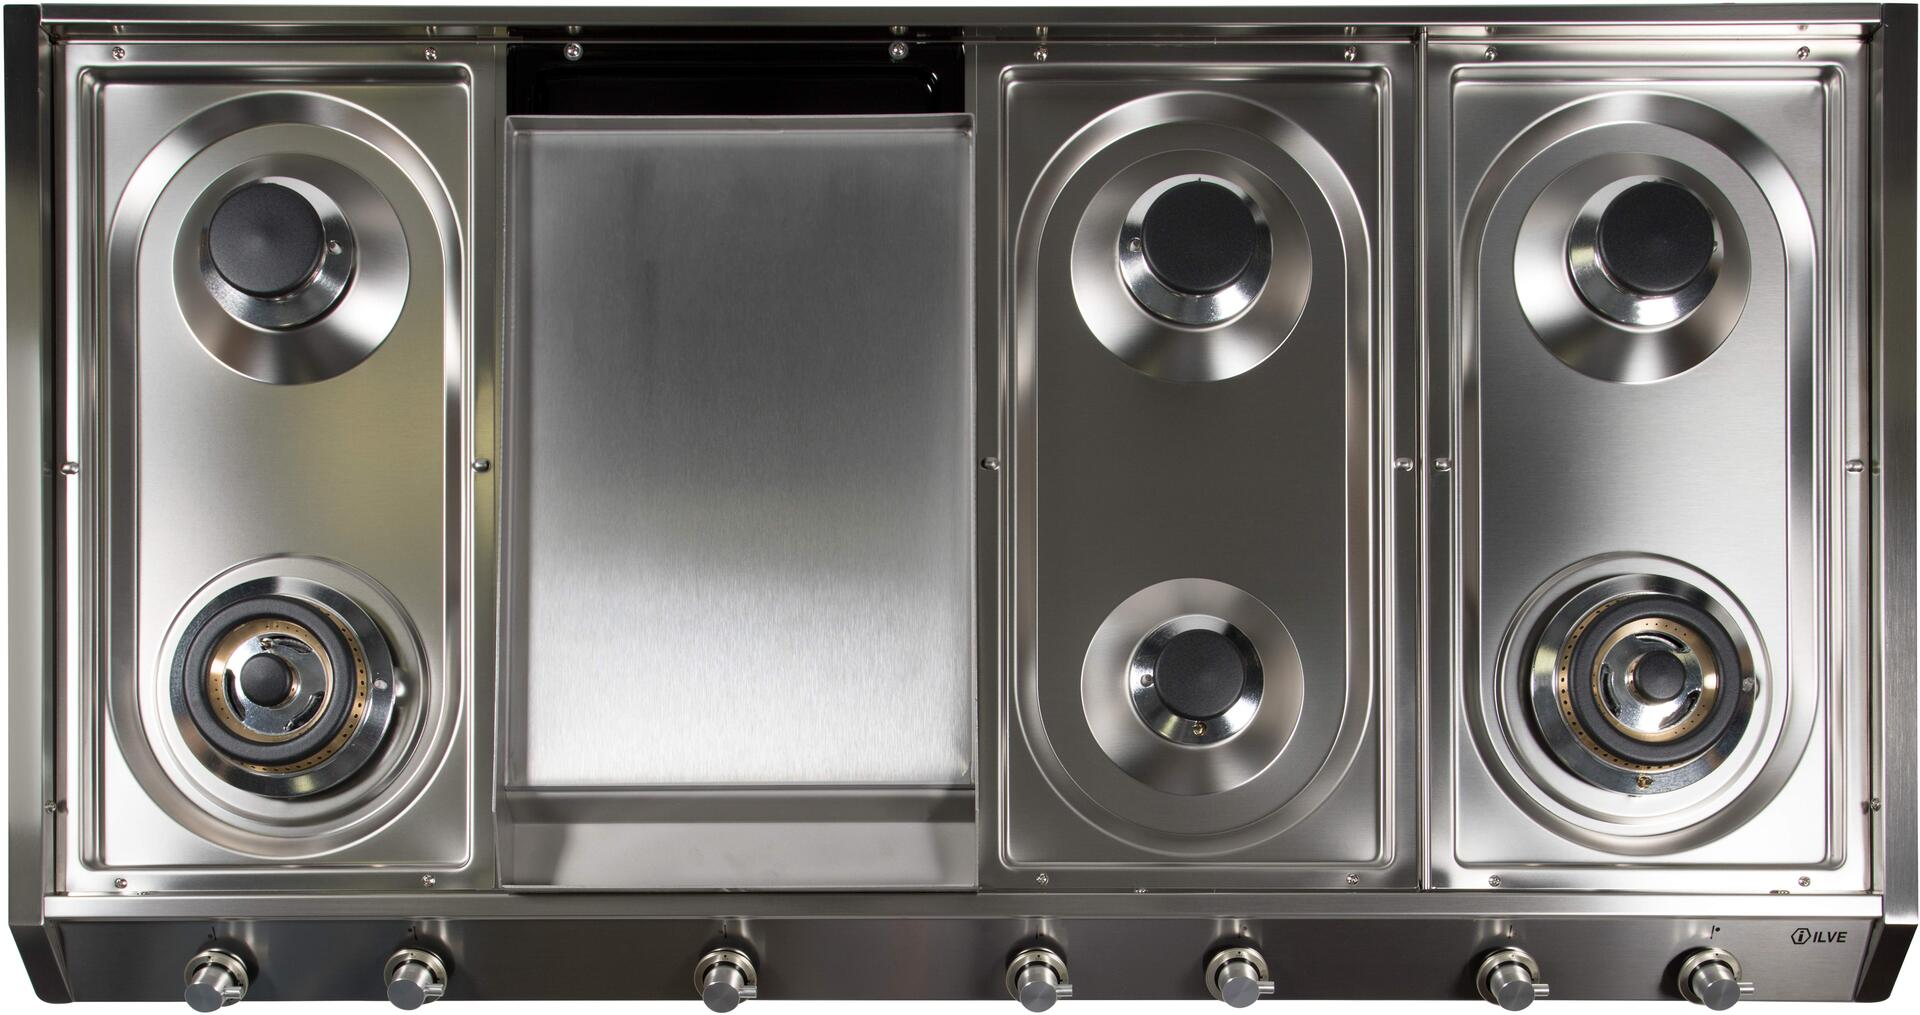 Ilve  UHP1265FDI Gas Cooktop Stainless Steel, UHP1265FDI Cooktop without Grates